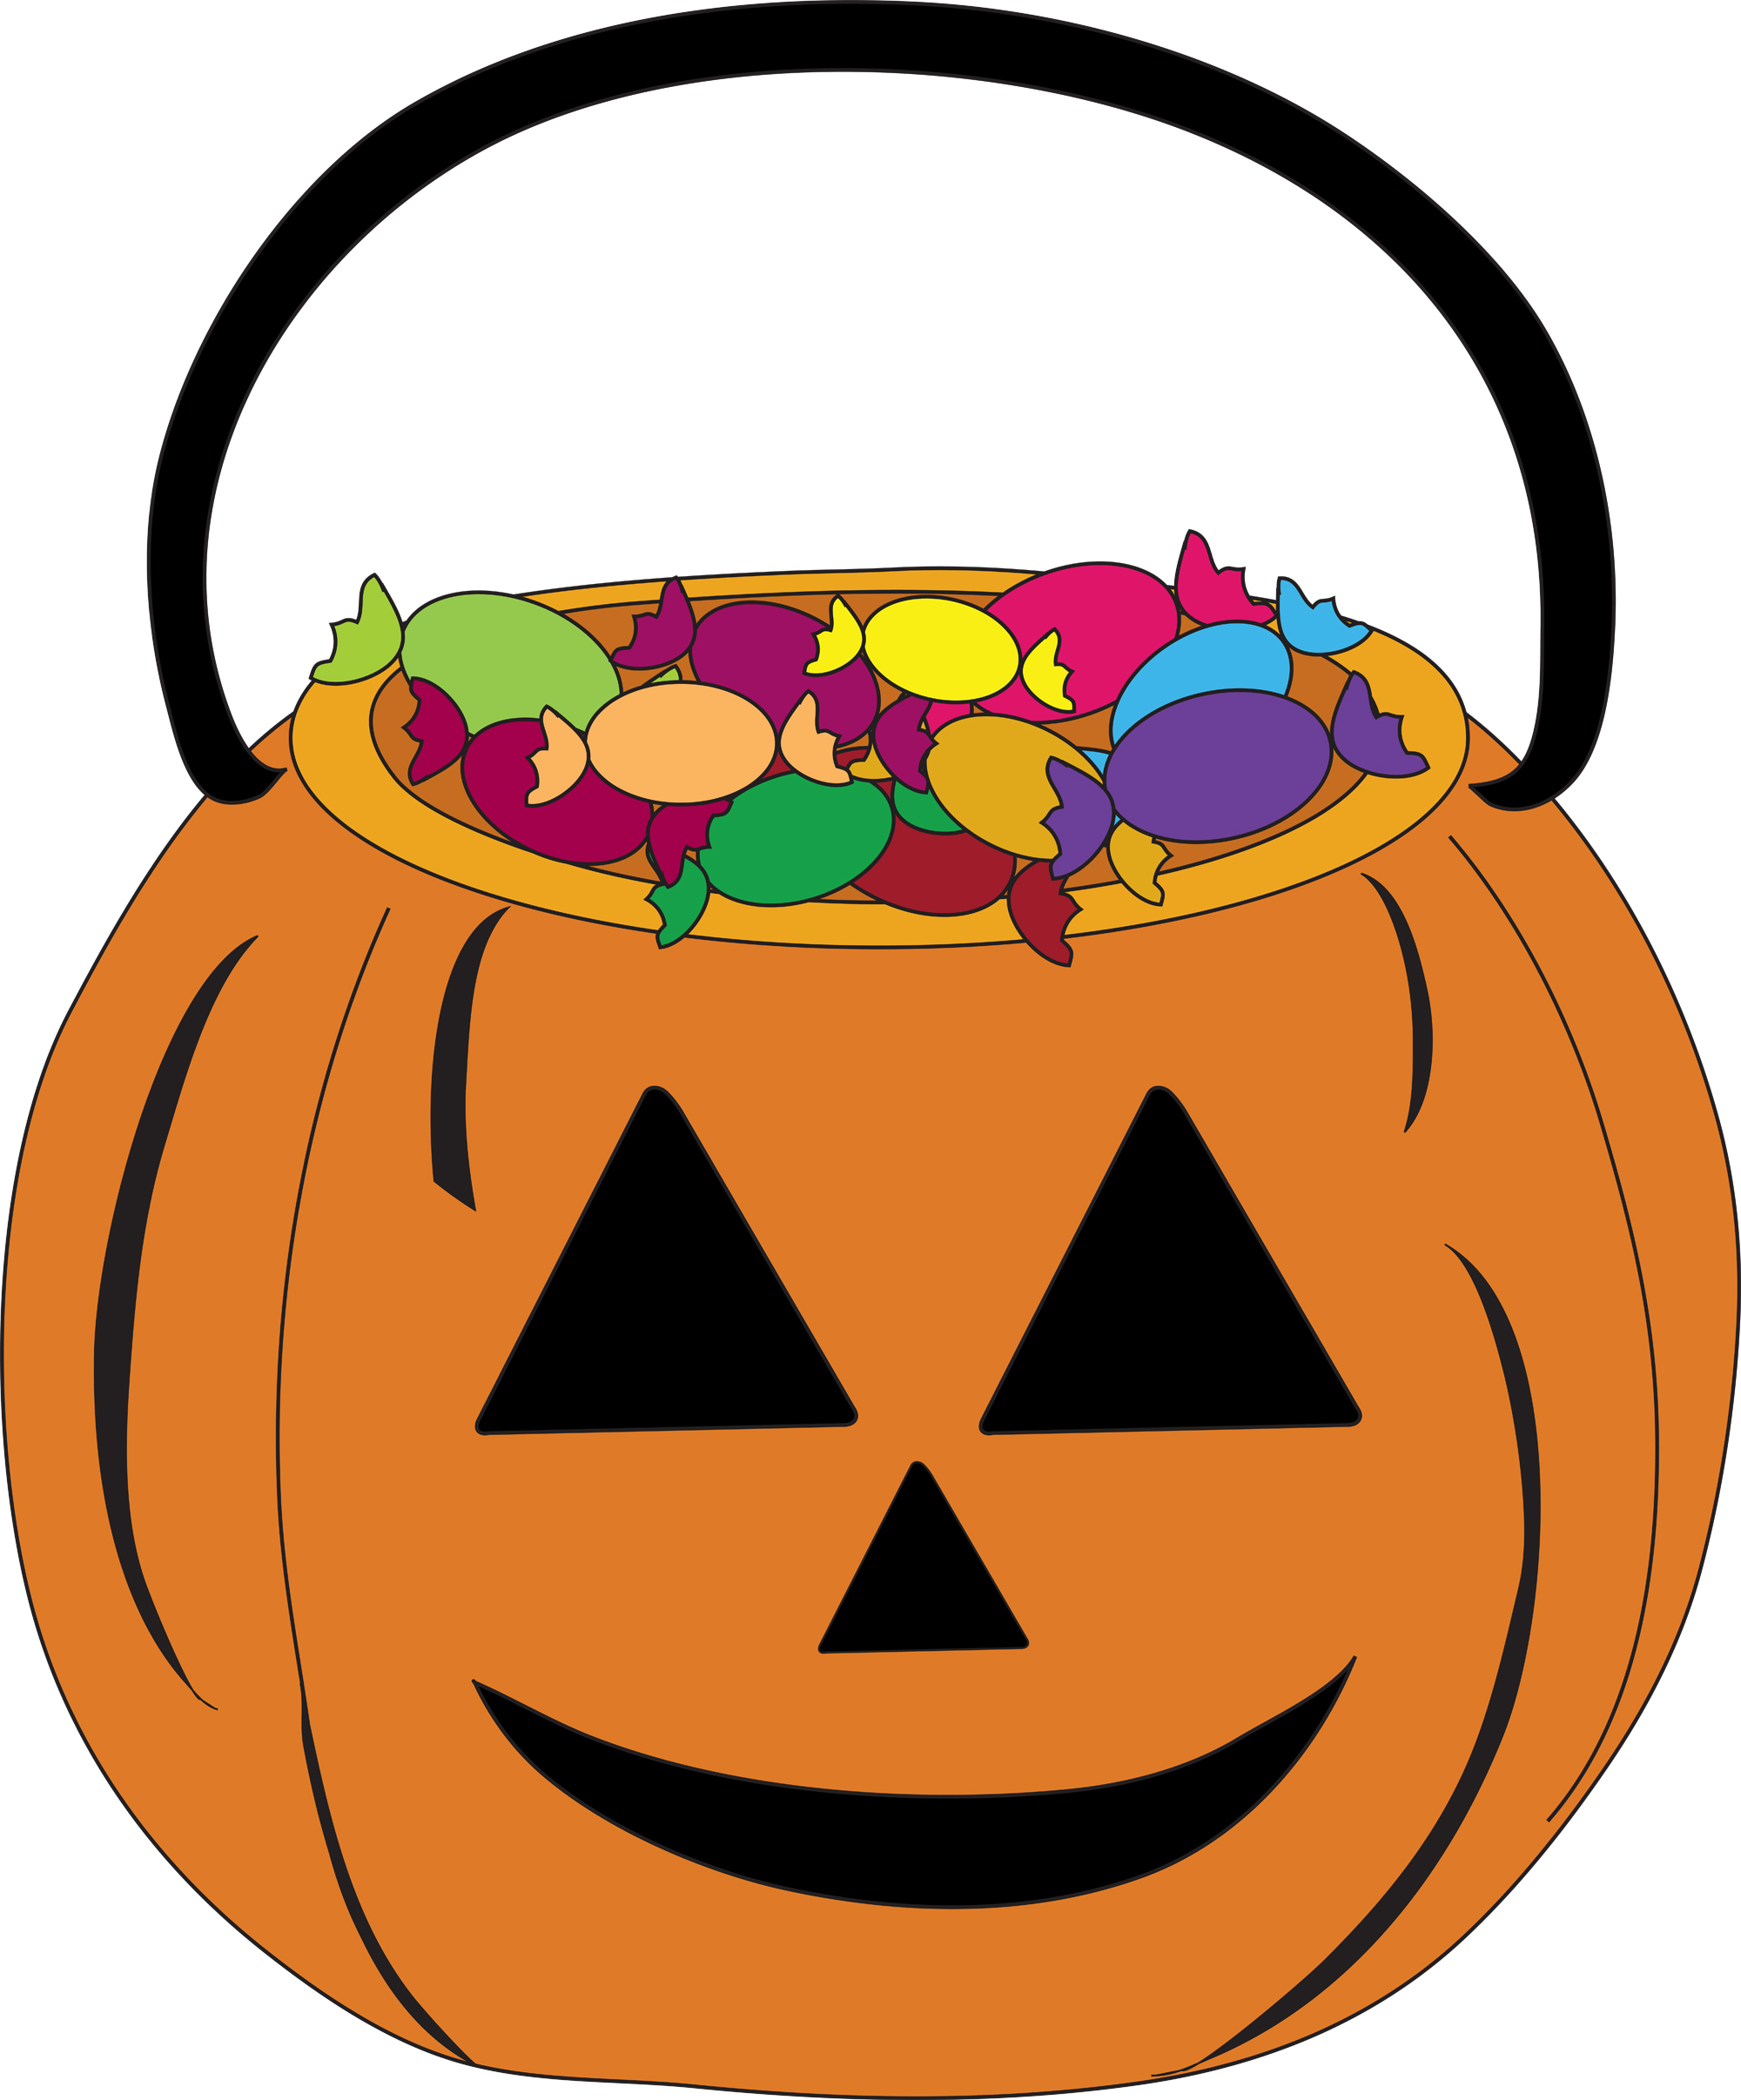 Sweet treats candy clipart images jpg transparent Halloween candy clipart 2 - WikiClipArt jpg transparent